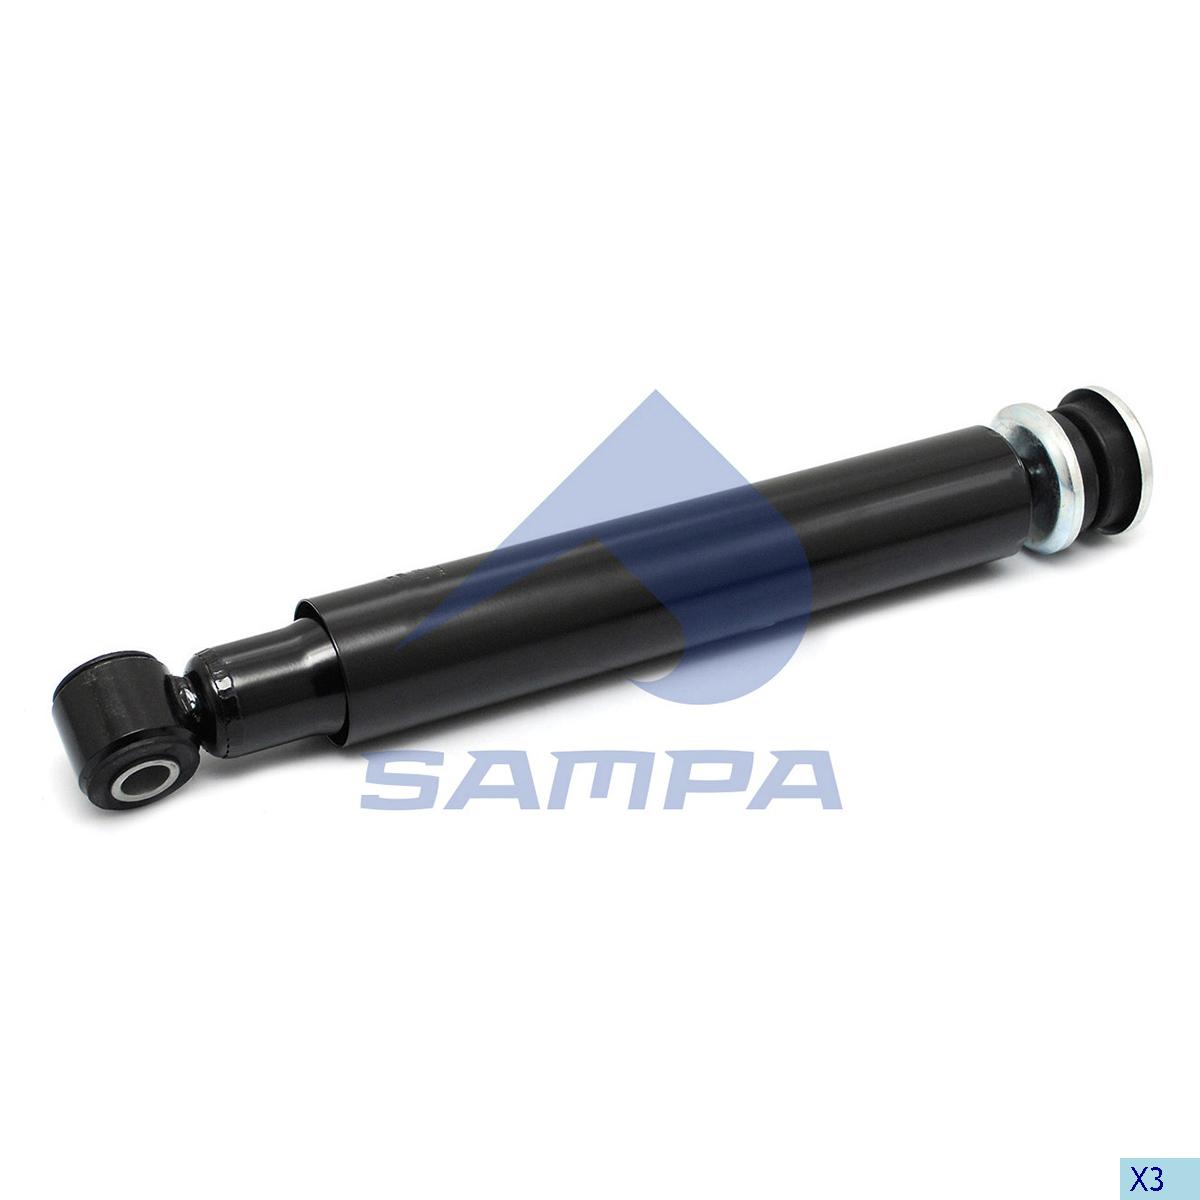 Shock Absorber, Scania, Suspension